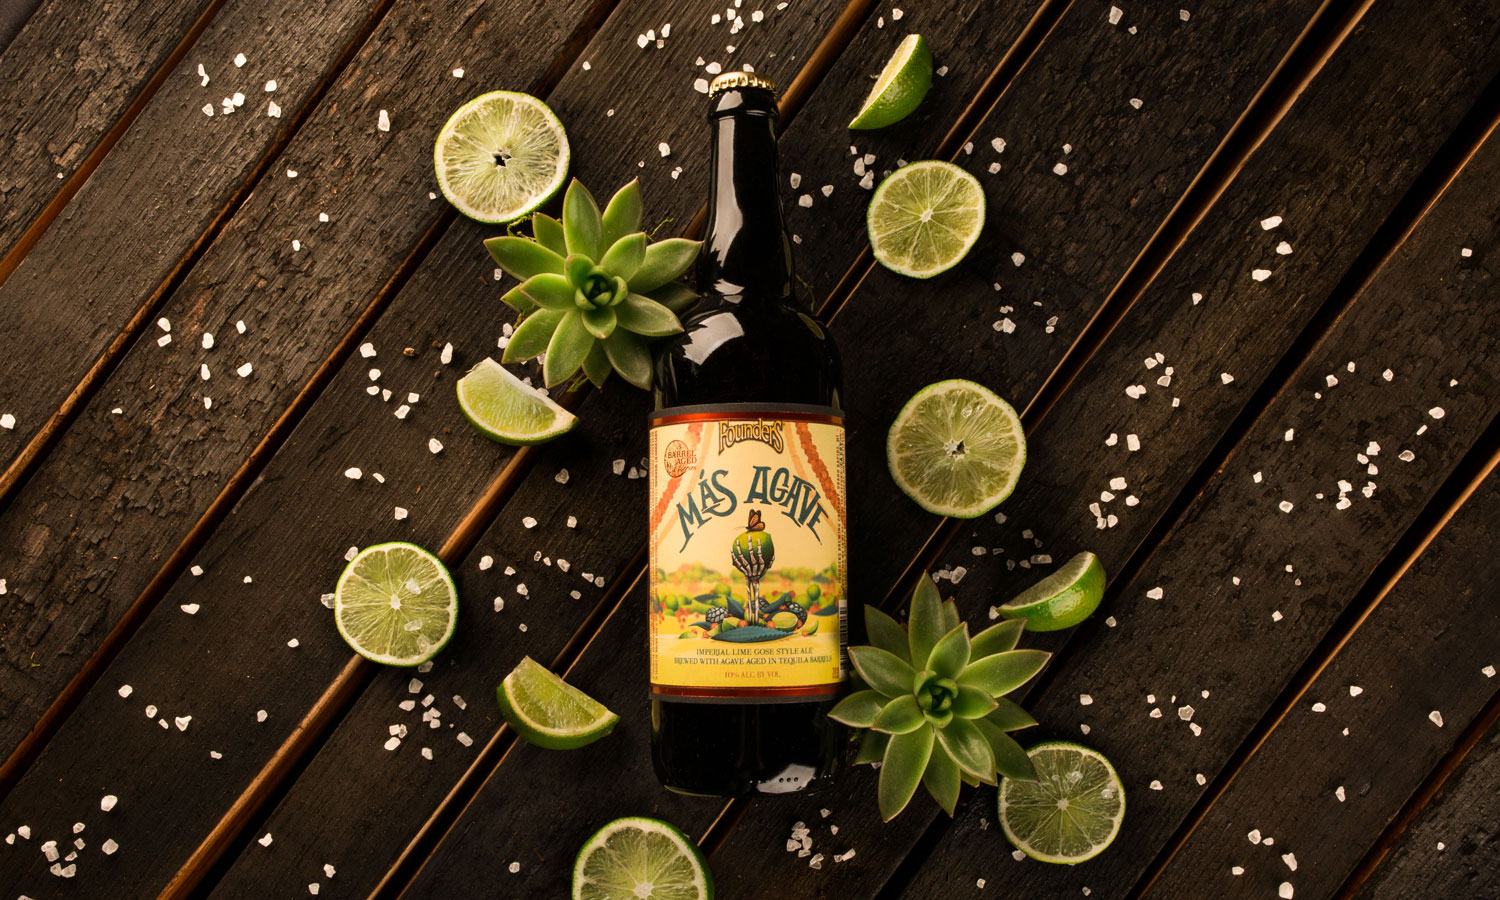 New Beer Release: Mas Agave - Founders Brewing Co